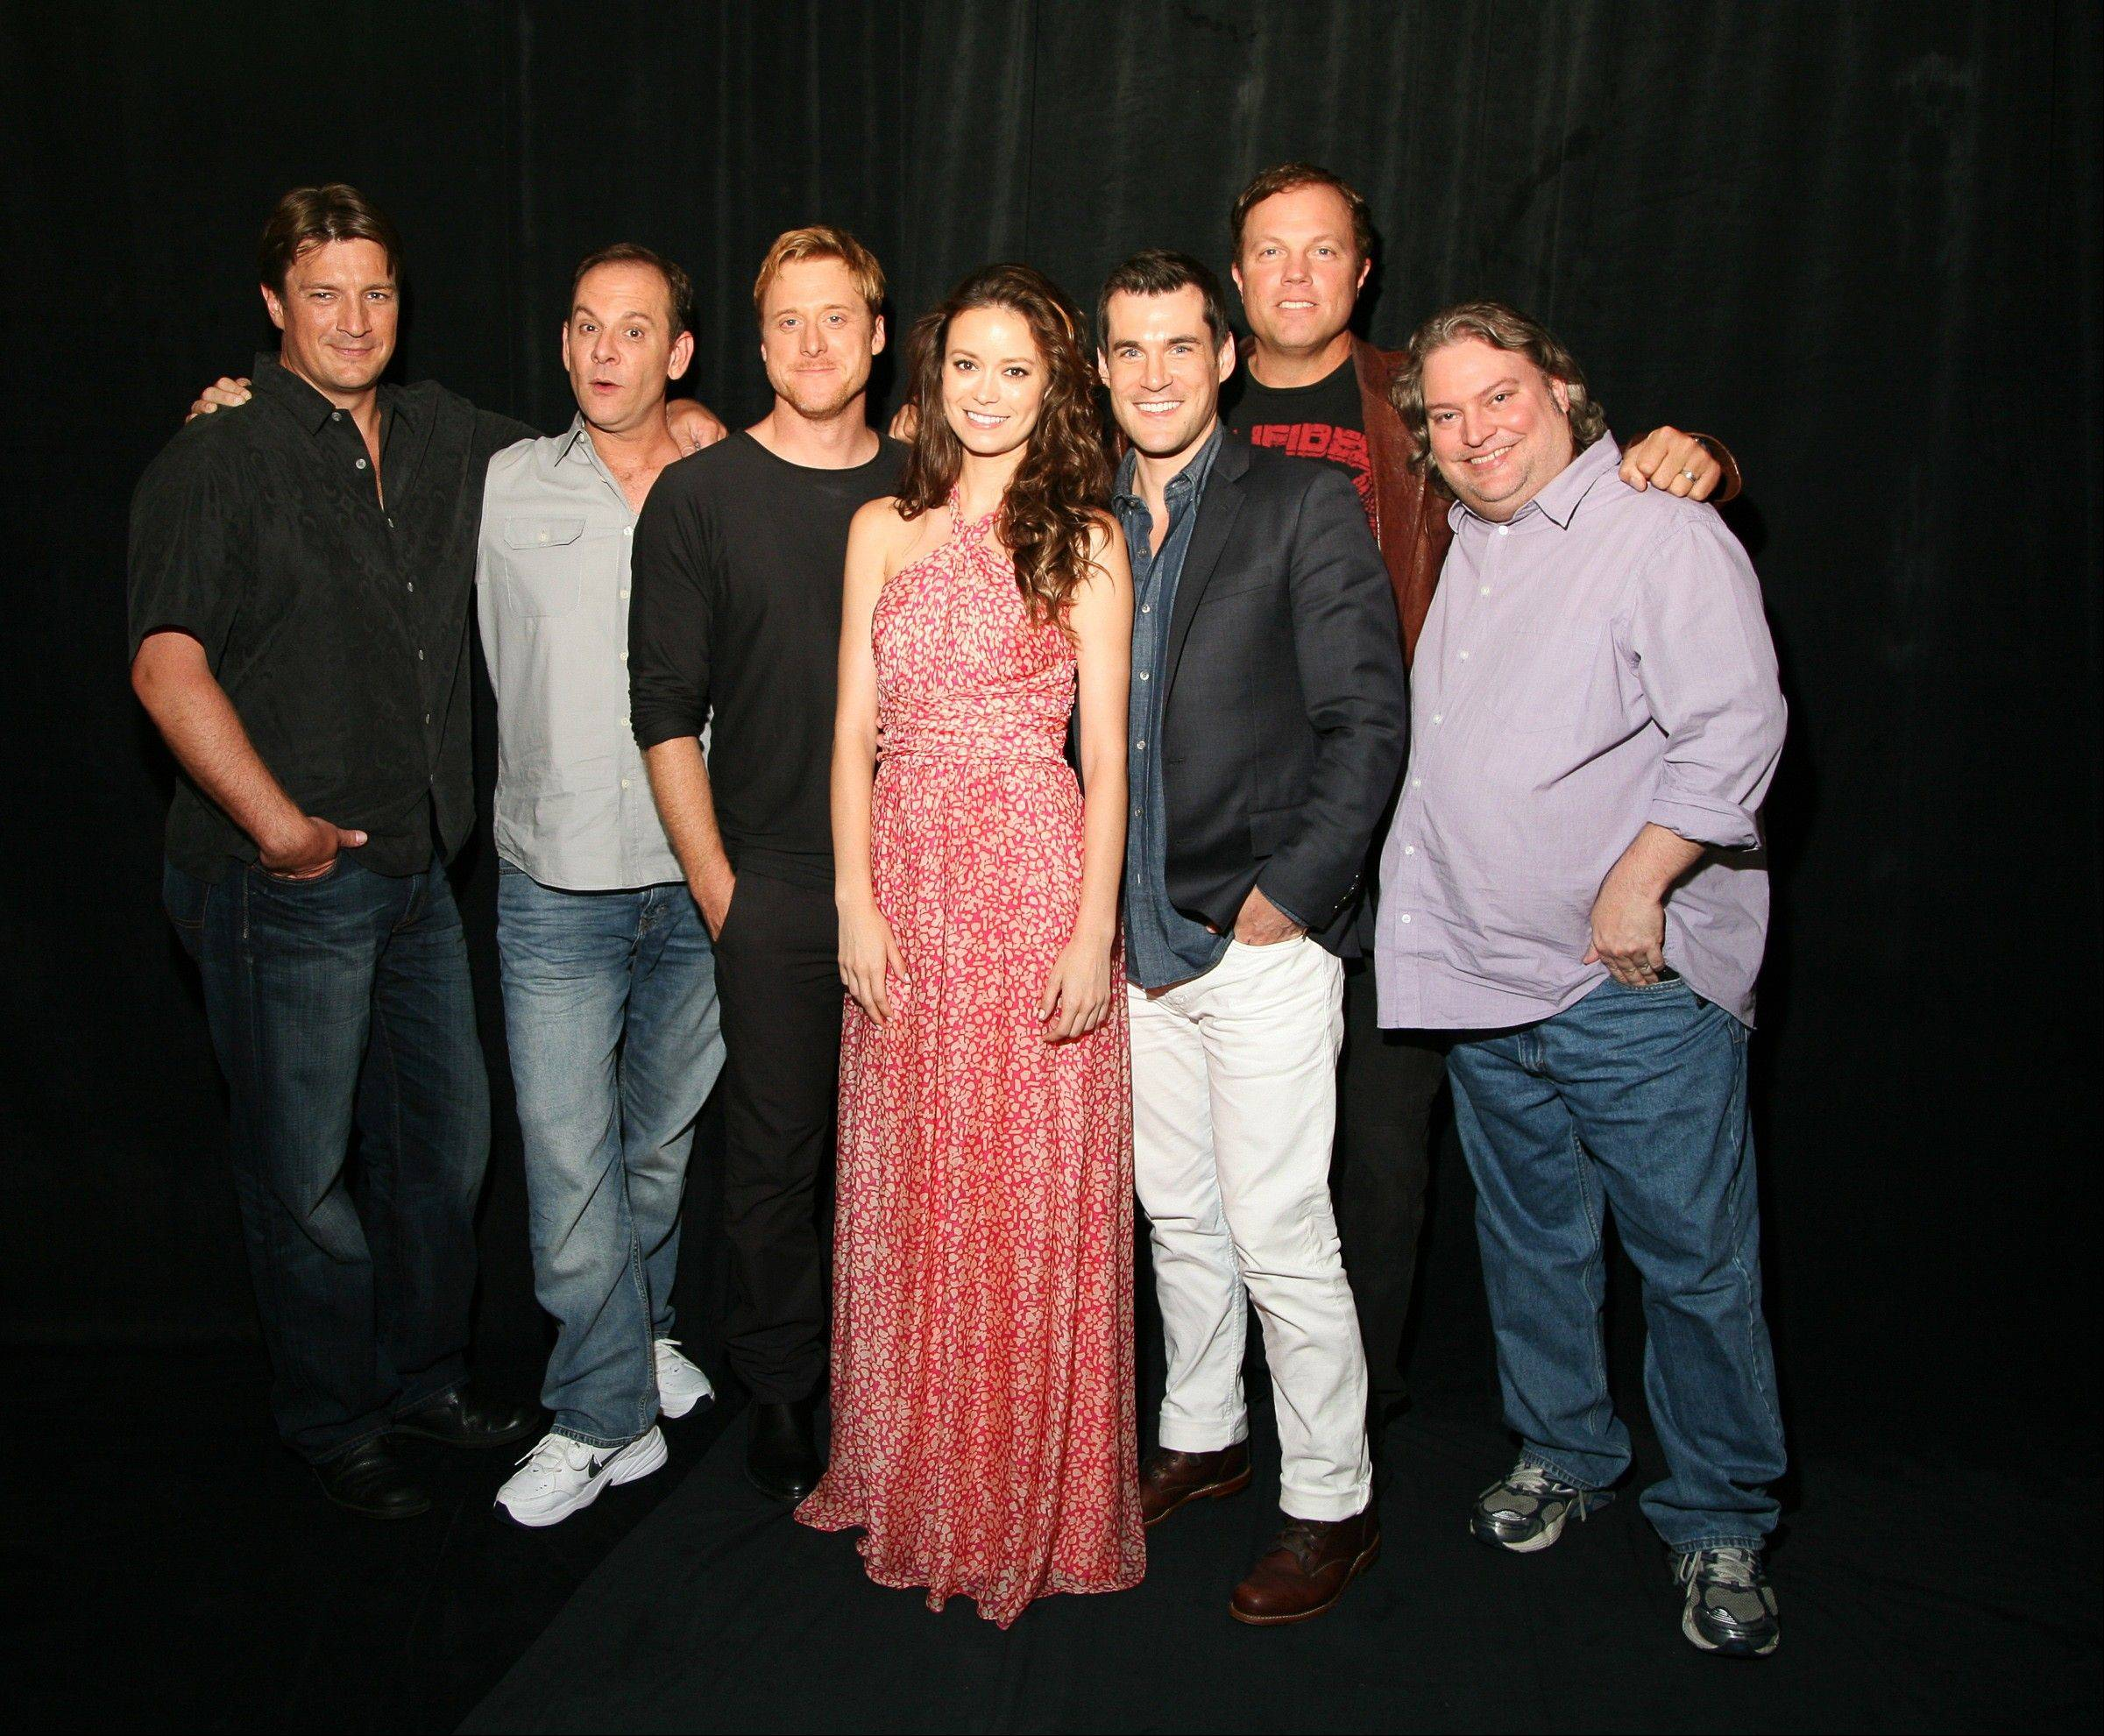 The cast of �Firefly� � Nathan Fillion, left, executive producer Tim Minear, Alan Tudyk, Summer Glau, Sean Maher, Adam Baldwin and executive story editor Jose Molina � are reuniting for the 10-year anniversary of the series in the Science Channel Special, �Firefly: Browncoats Unite,� airing at 9 p.m. Sunday, Nov. 11.